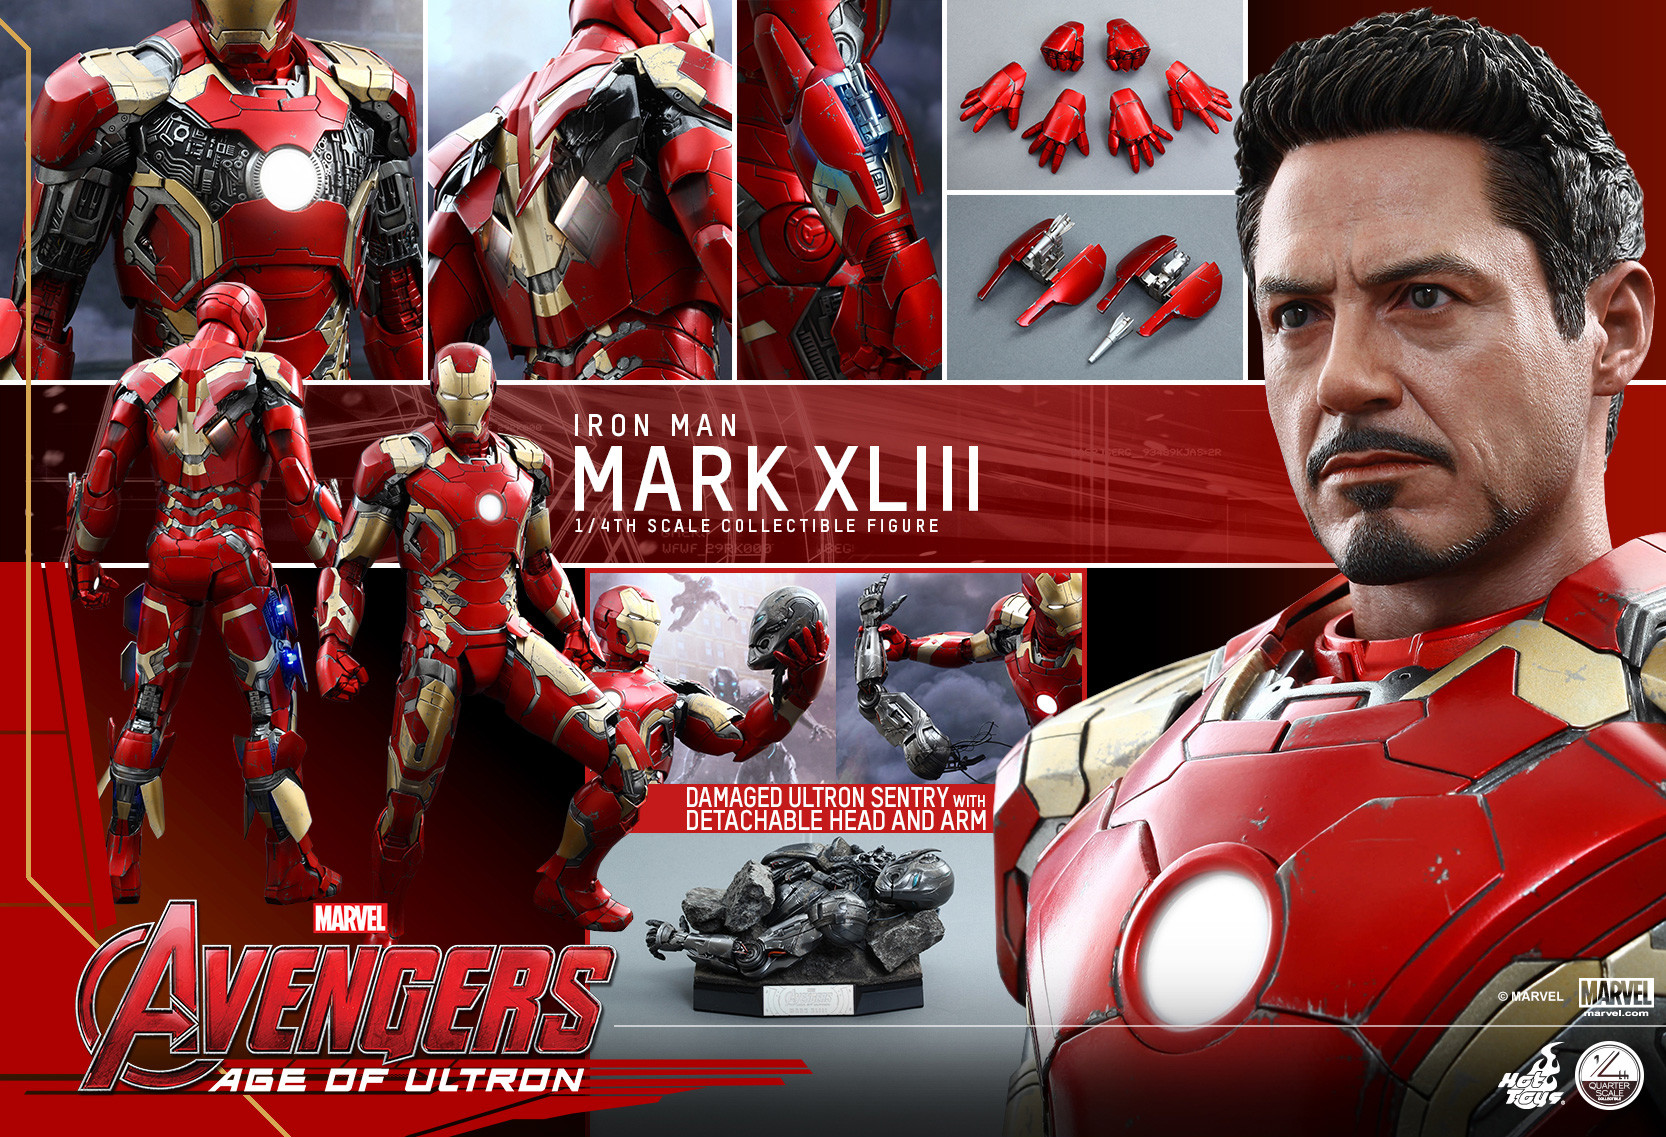 hot toys iron man mark 43 1  4 scale figure up for order